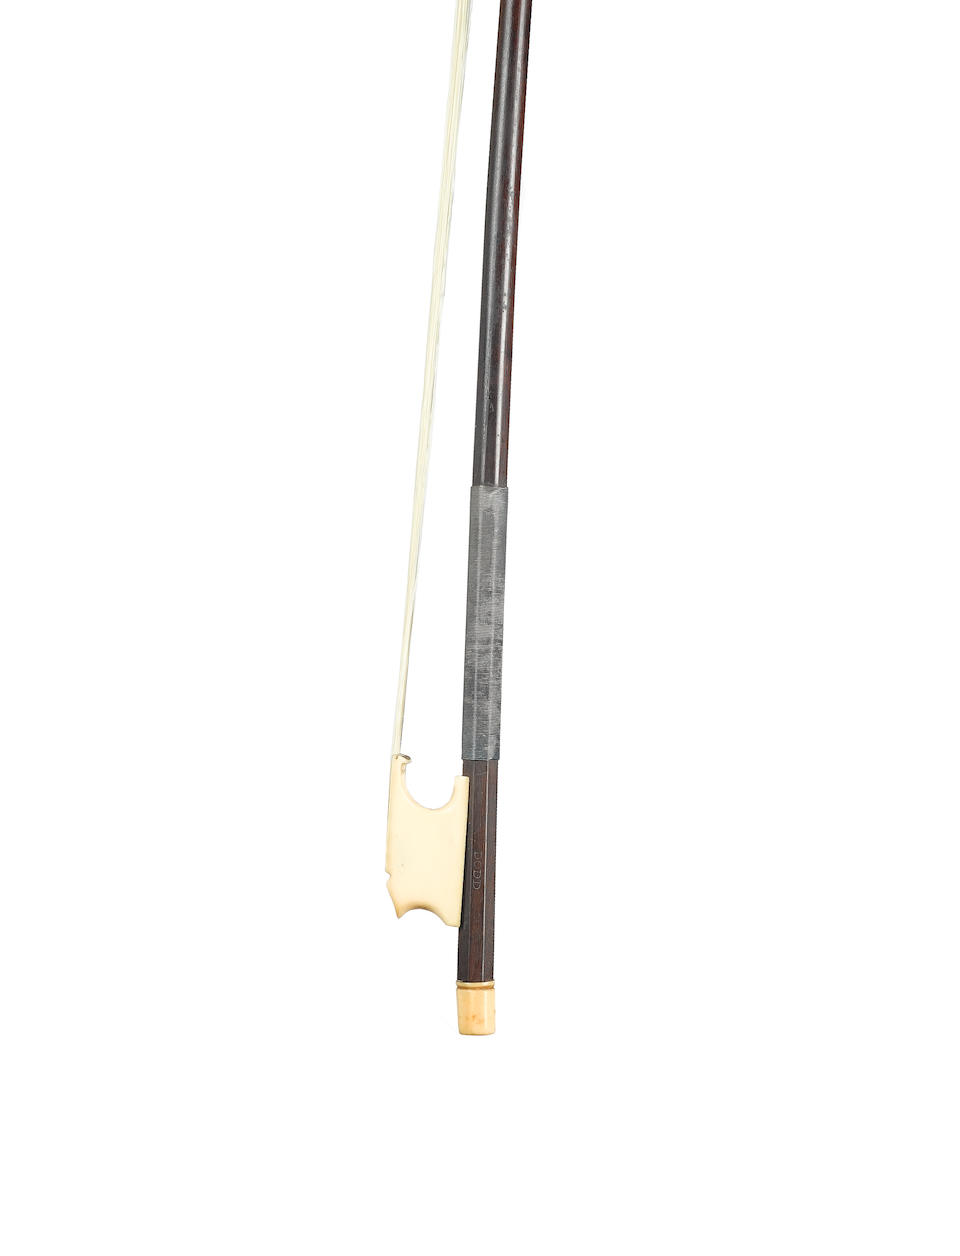 An Ivory mounted Cello Bow by John Dodd, London, circa 1780 (2)